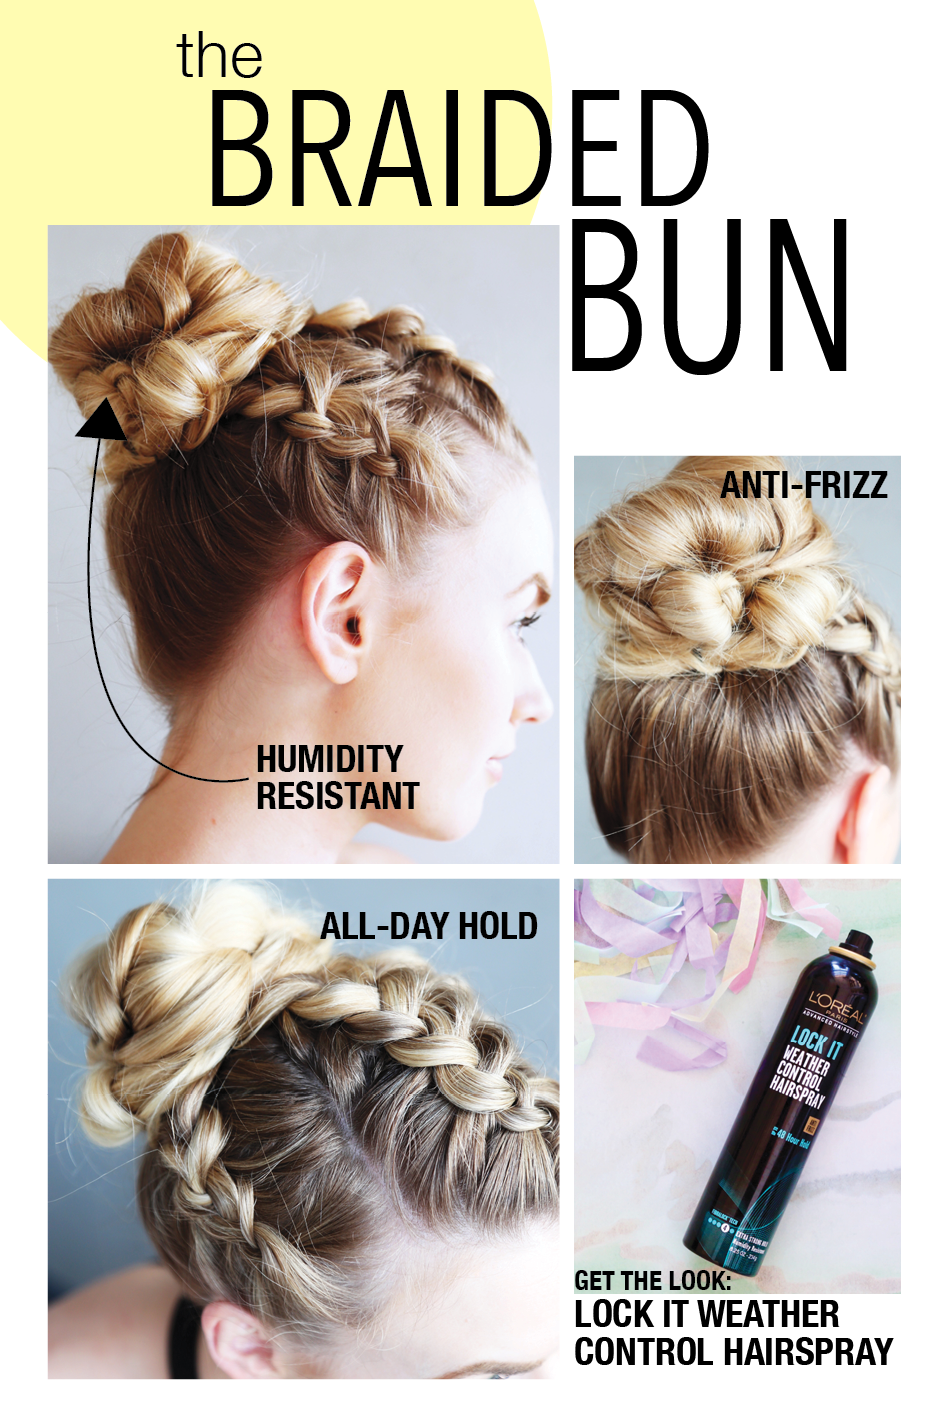 Hairstyles Hairspray pictures best photo